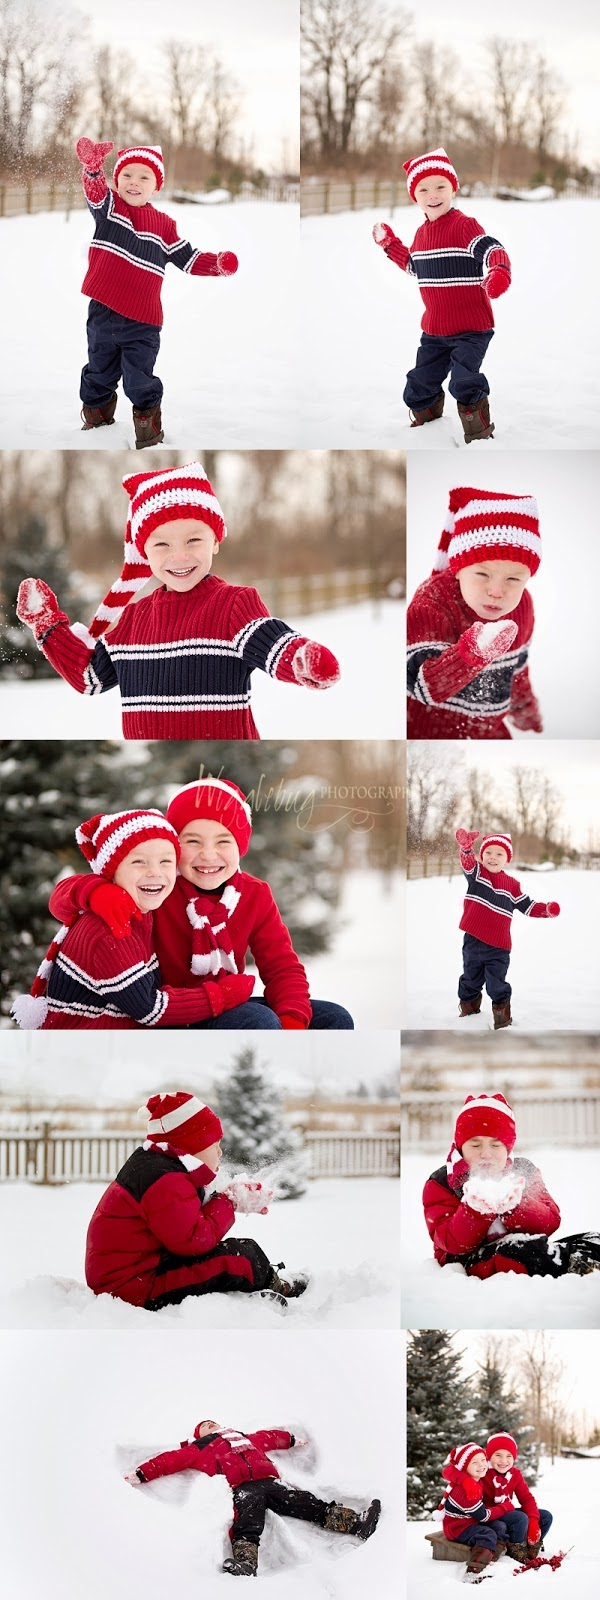 boys playing in snow: Winter outdoor portraits